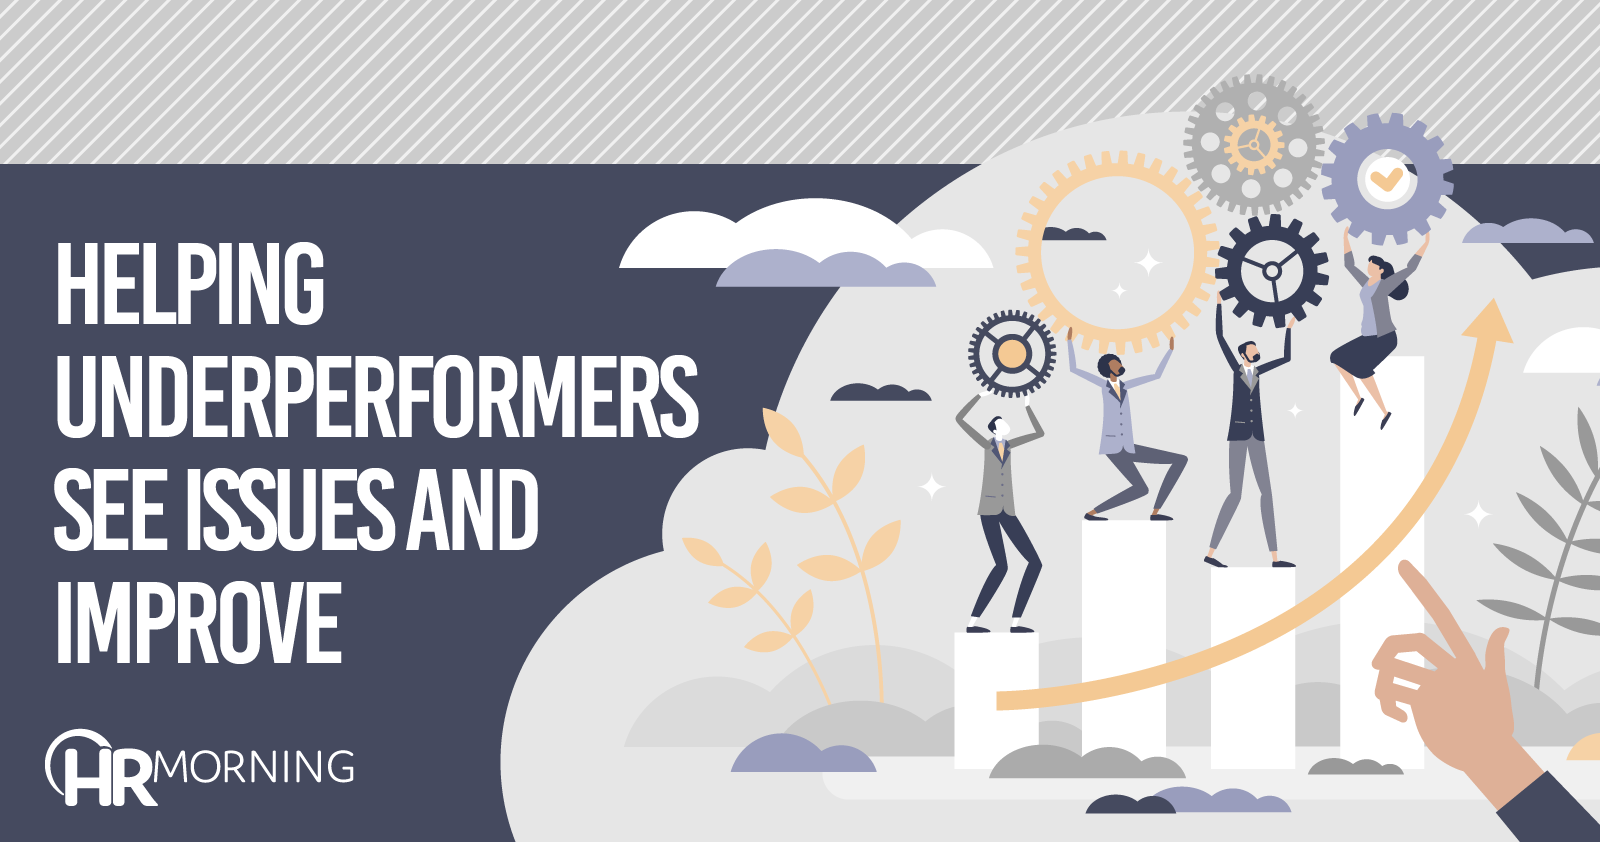 Helping Underperformers See Issues And Improve